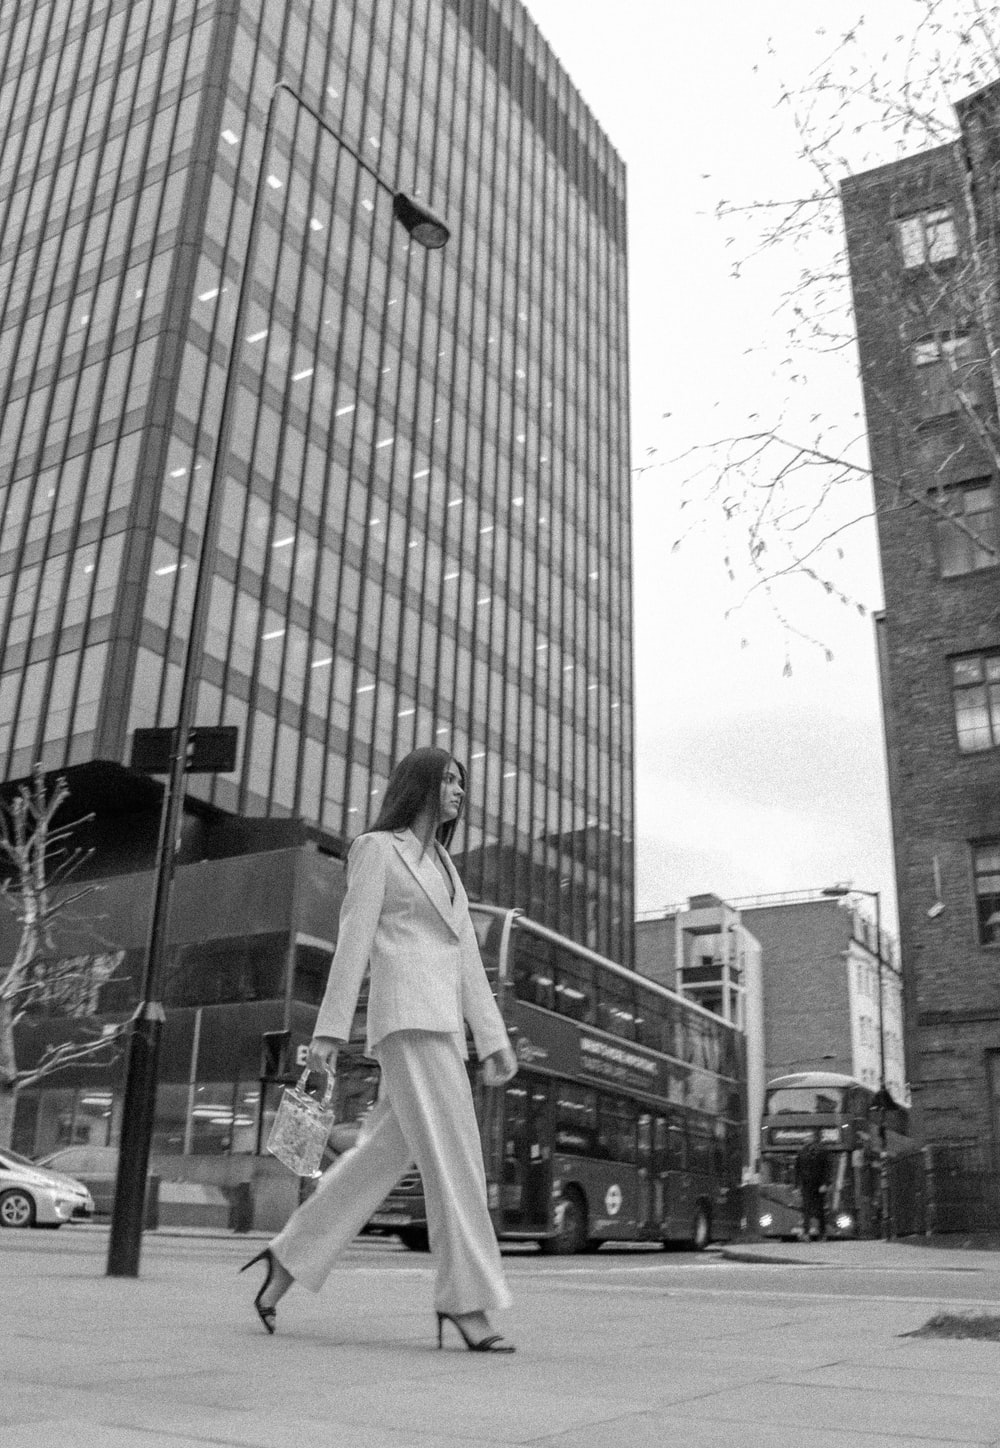 woman walking near buildings